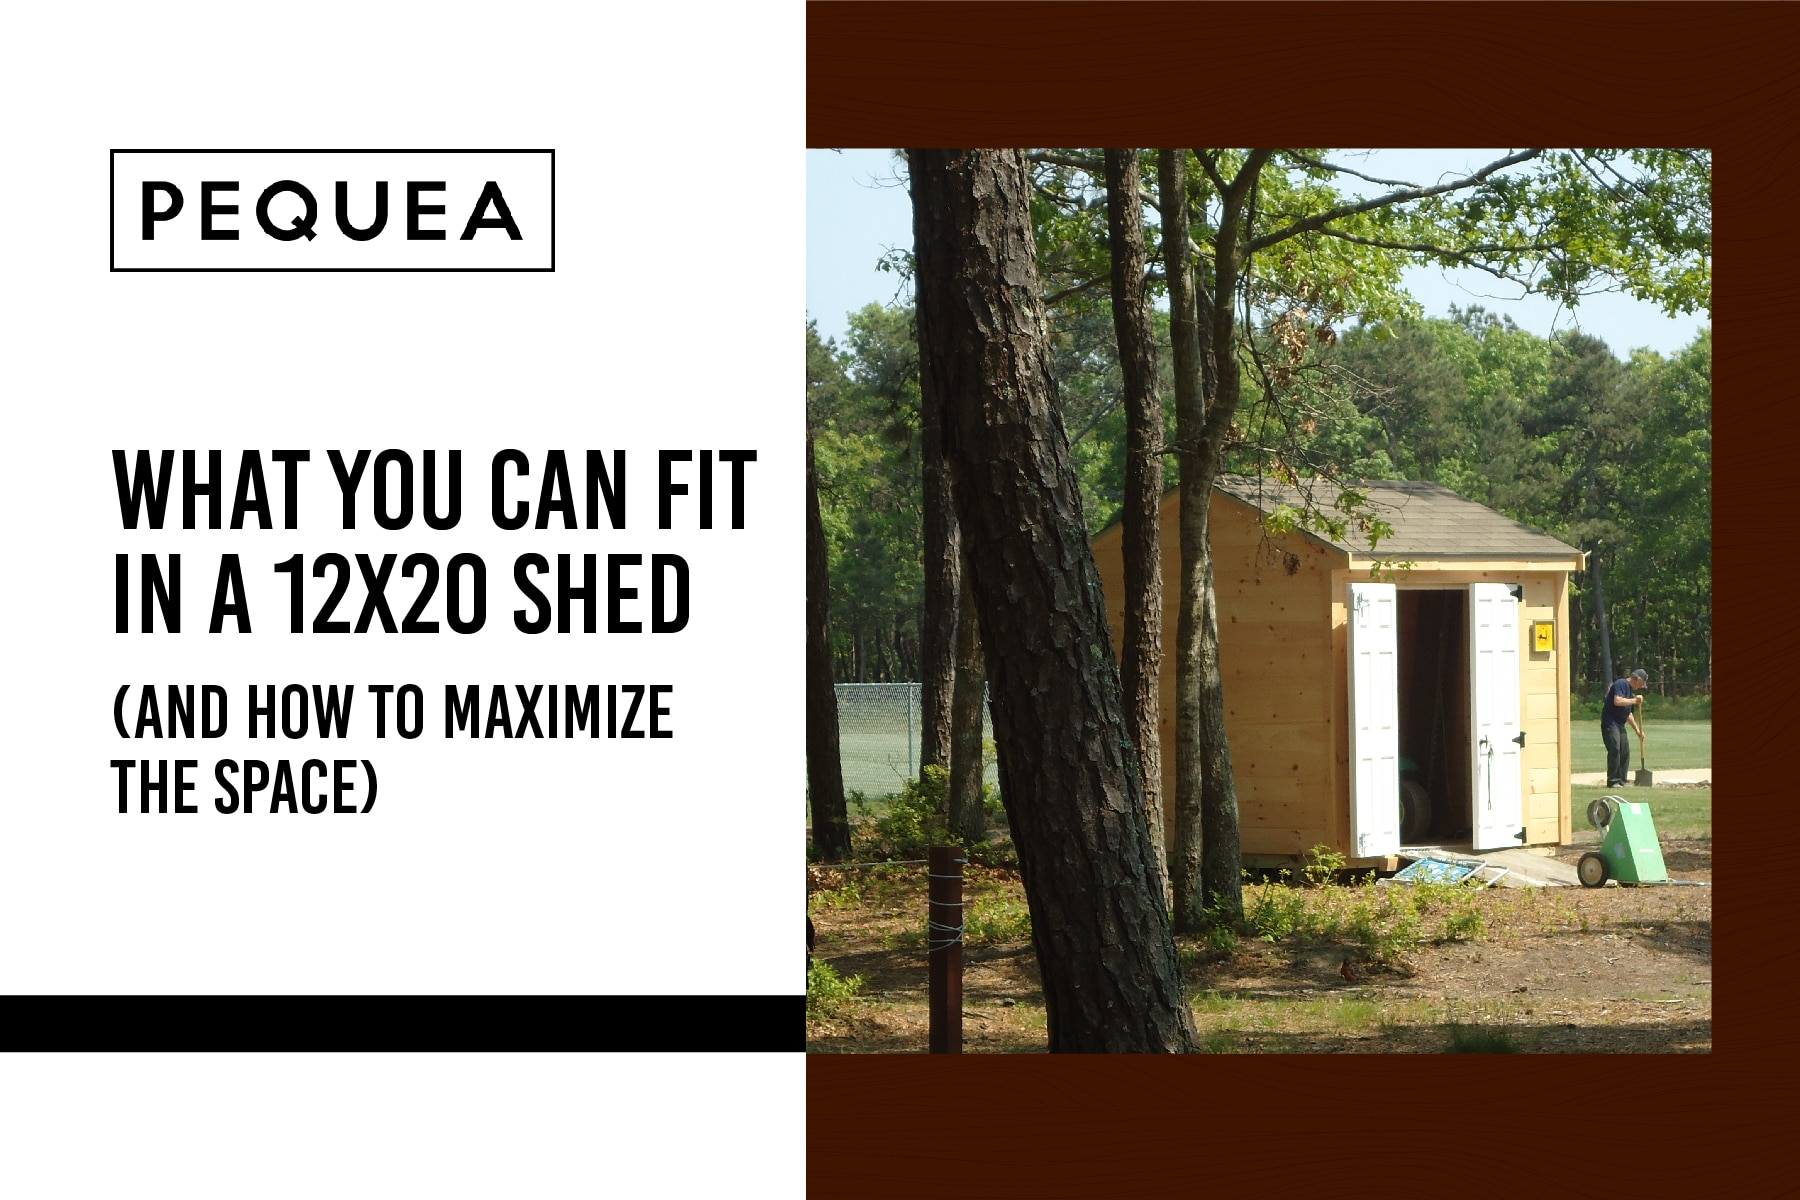 What You Can Fit In A 12x20 Shed (and how to maximize the space) 1